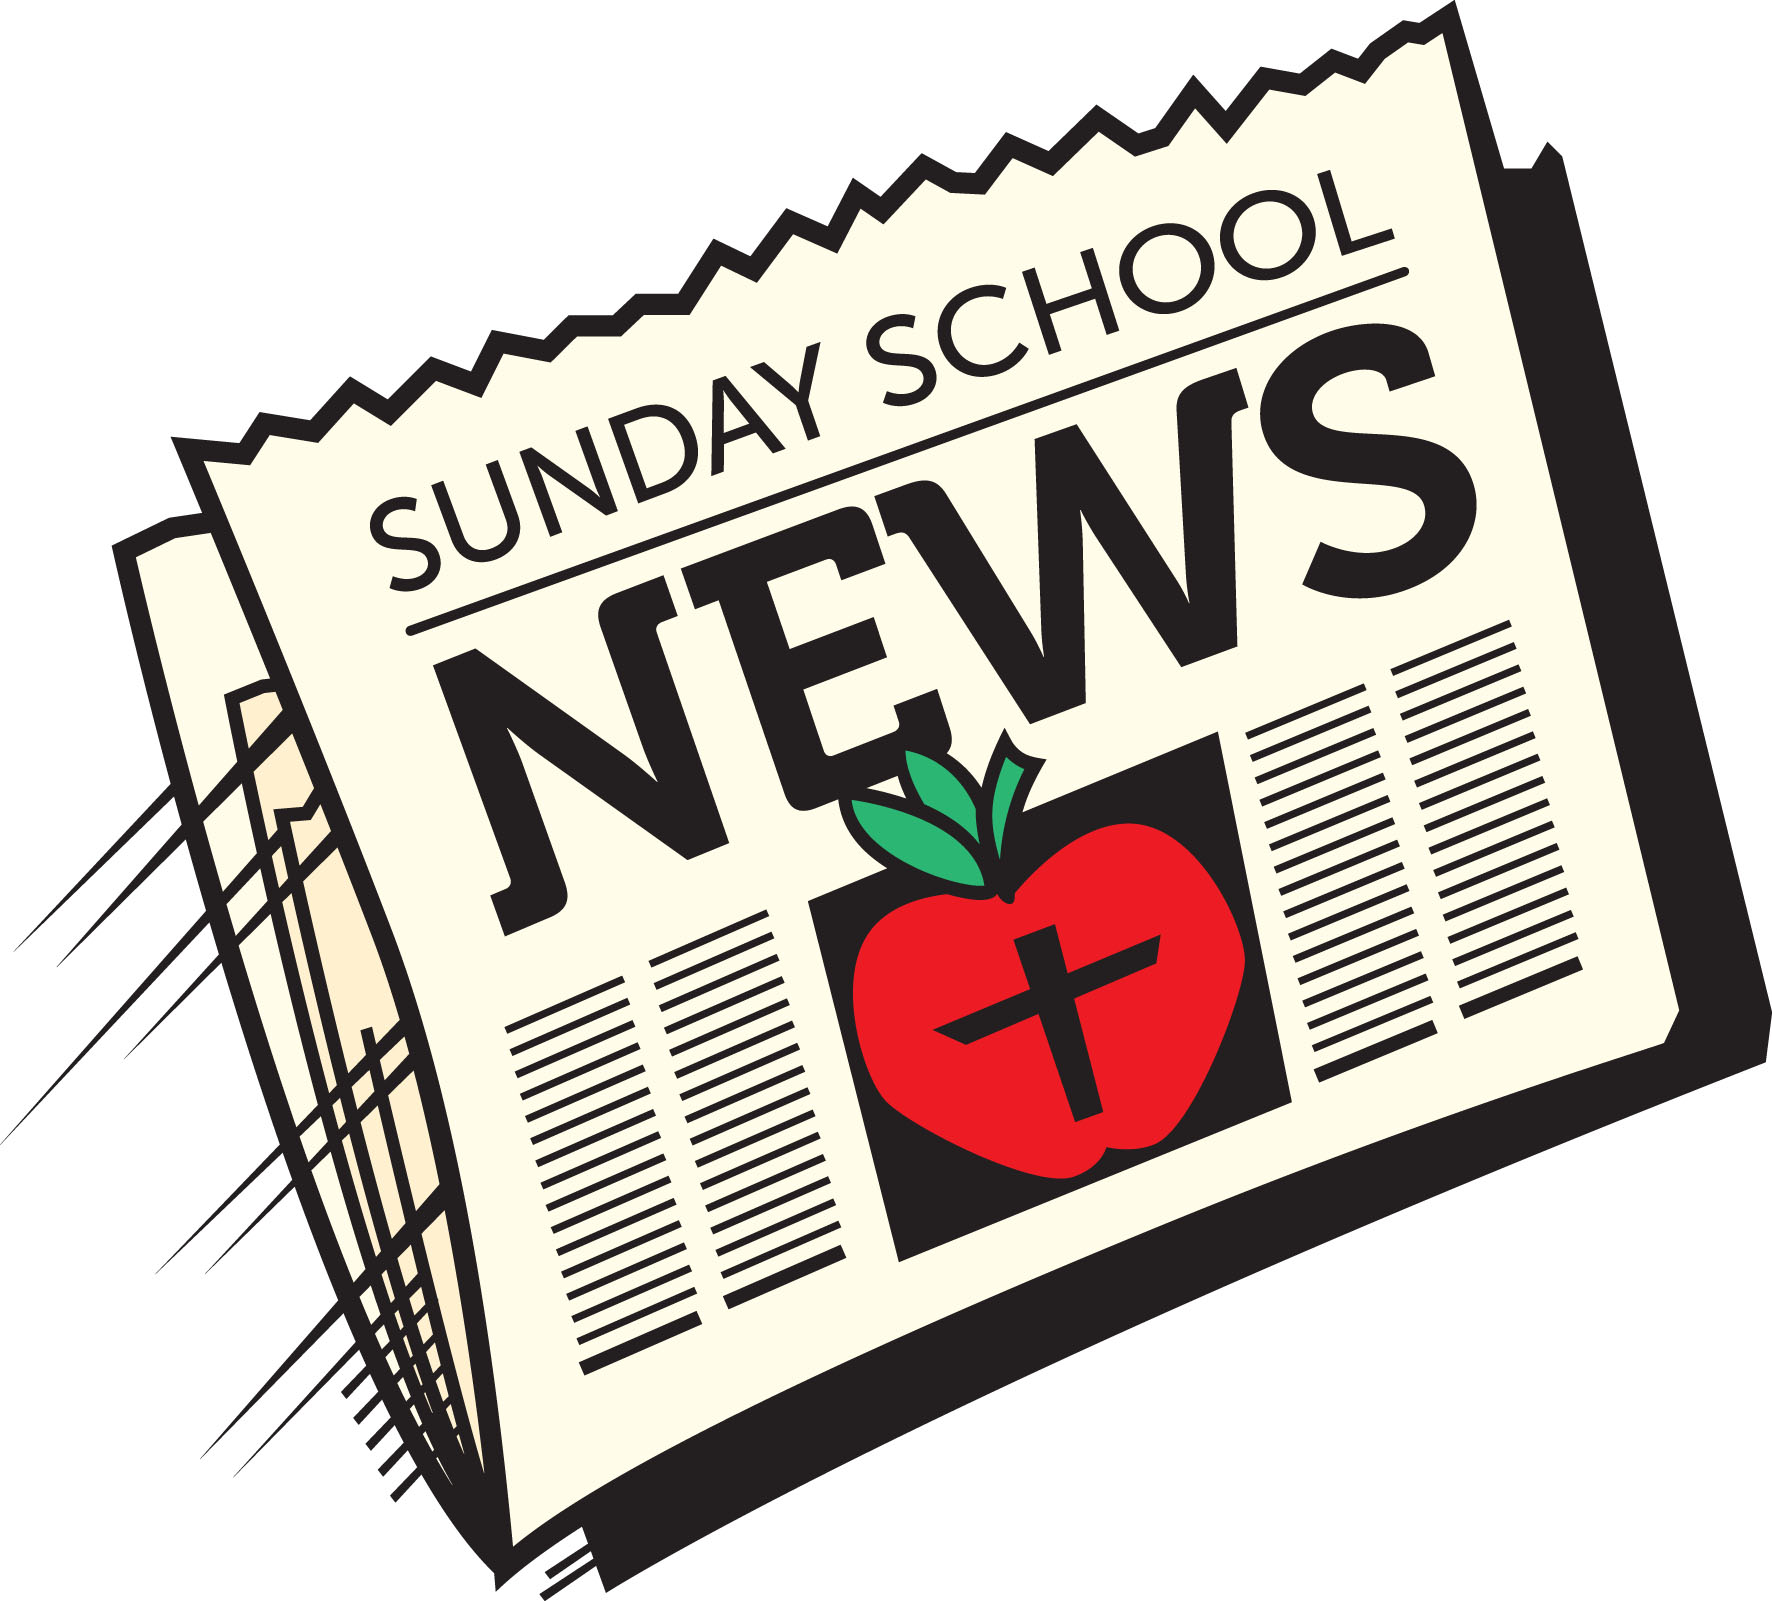 sunday school news